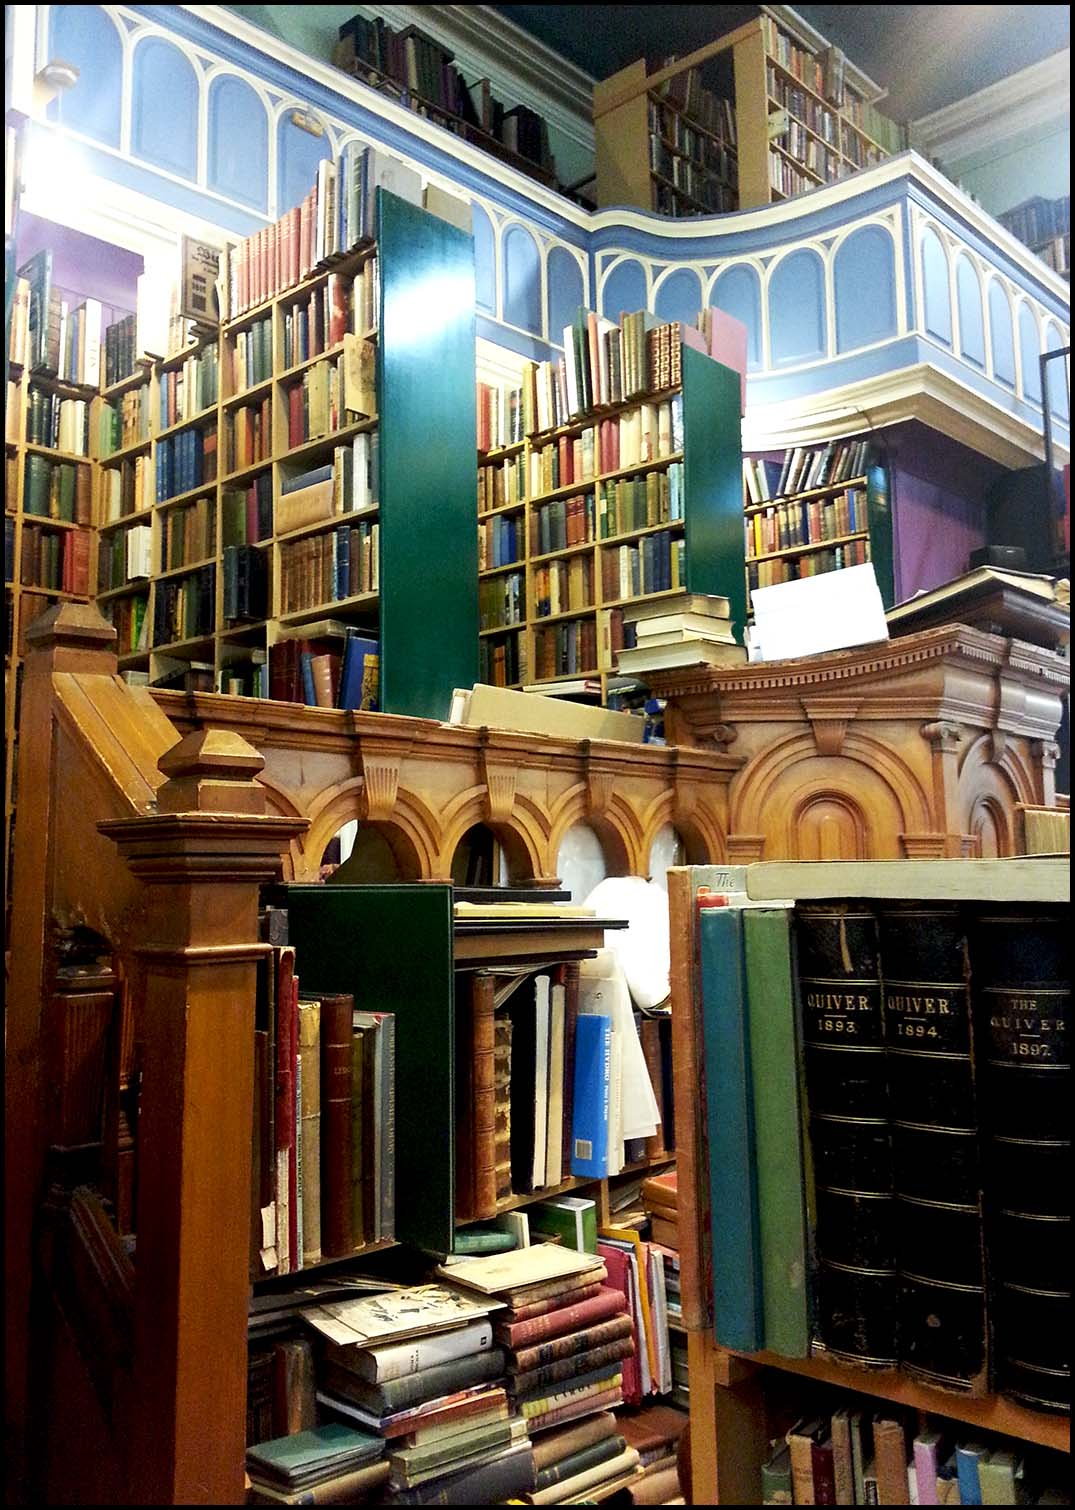 Books piled high in Leakey's bookshop, Inverness